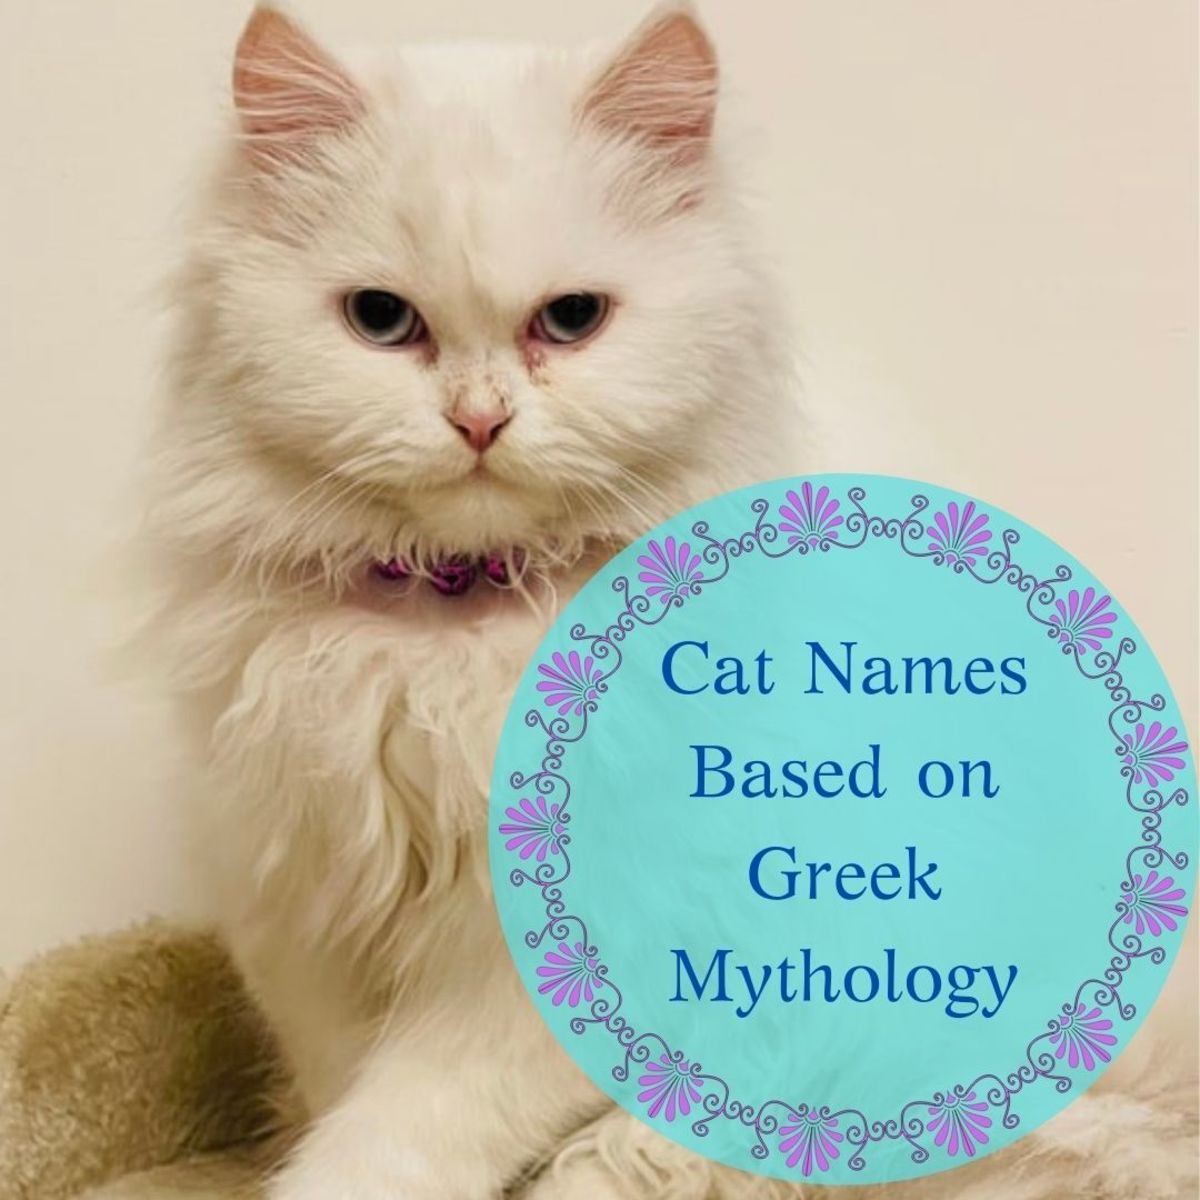 Mythology is a great place to turn to for cat names brimming with meaning, and offers everything from gods and goddesses, to nymphs and Titans to choose from.